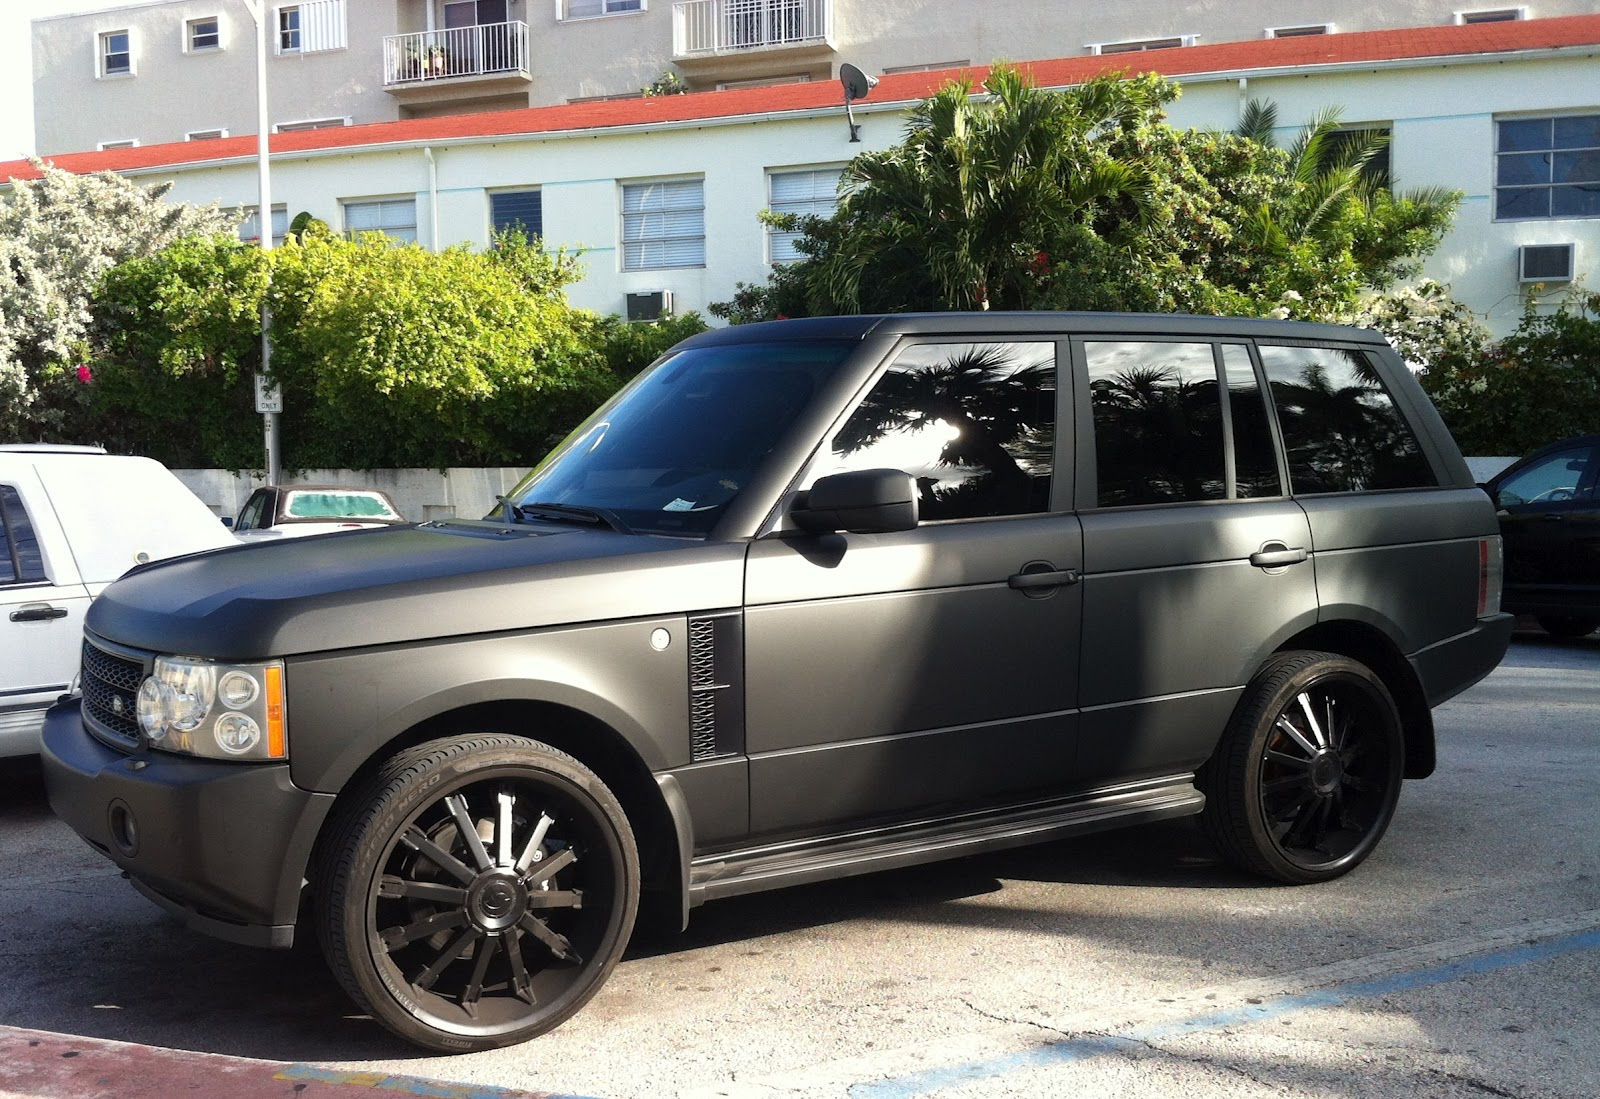 Matte Black Range Rover Supercharged Exotic Cars On The Streets Of Miami